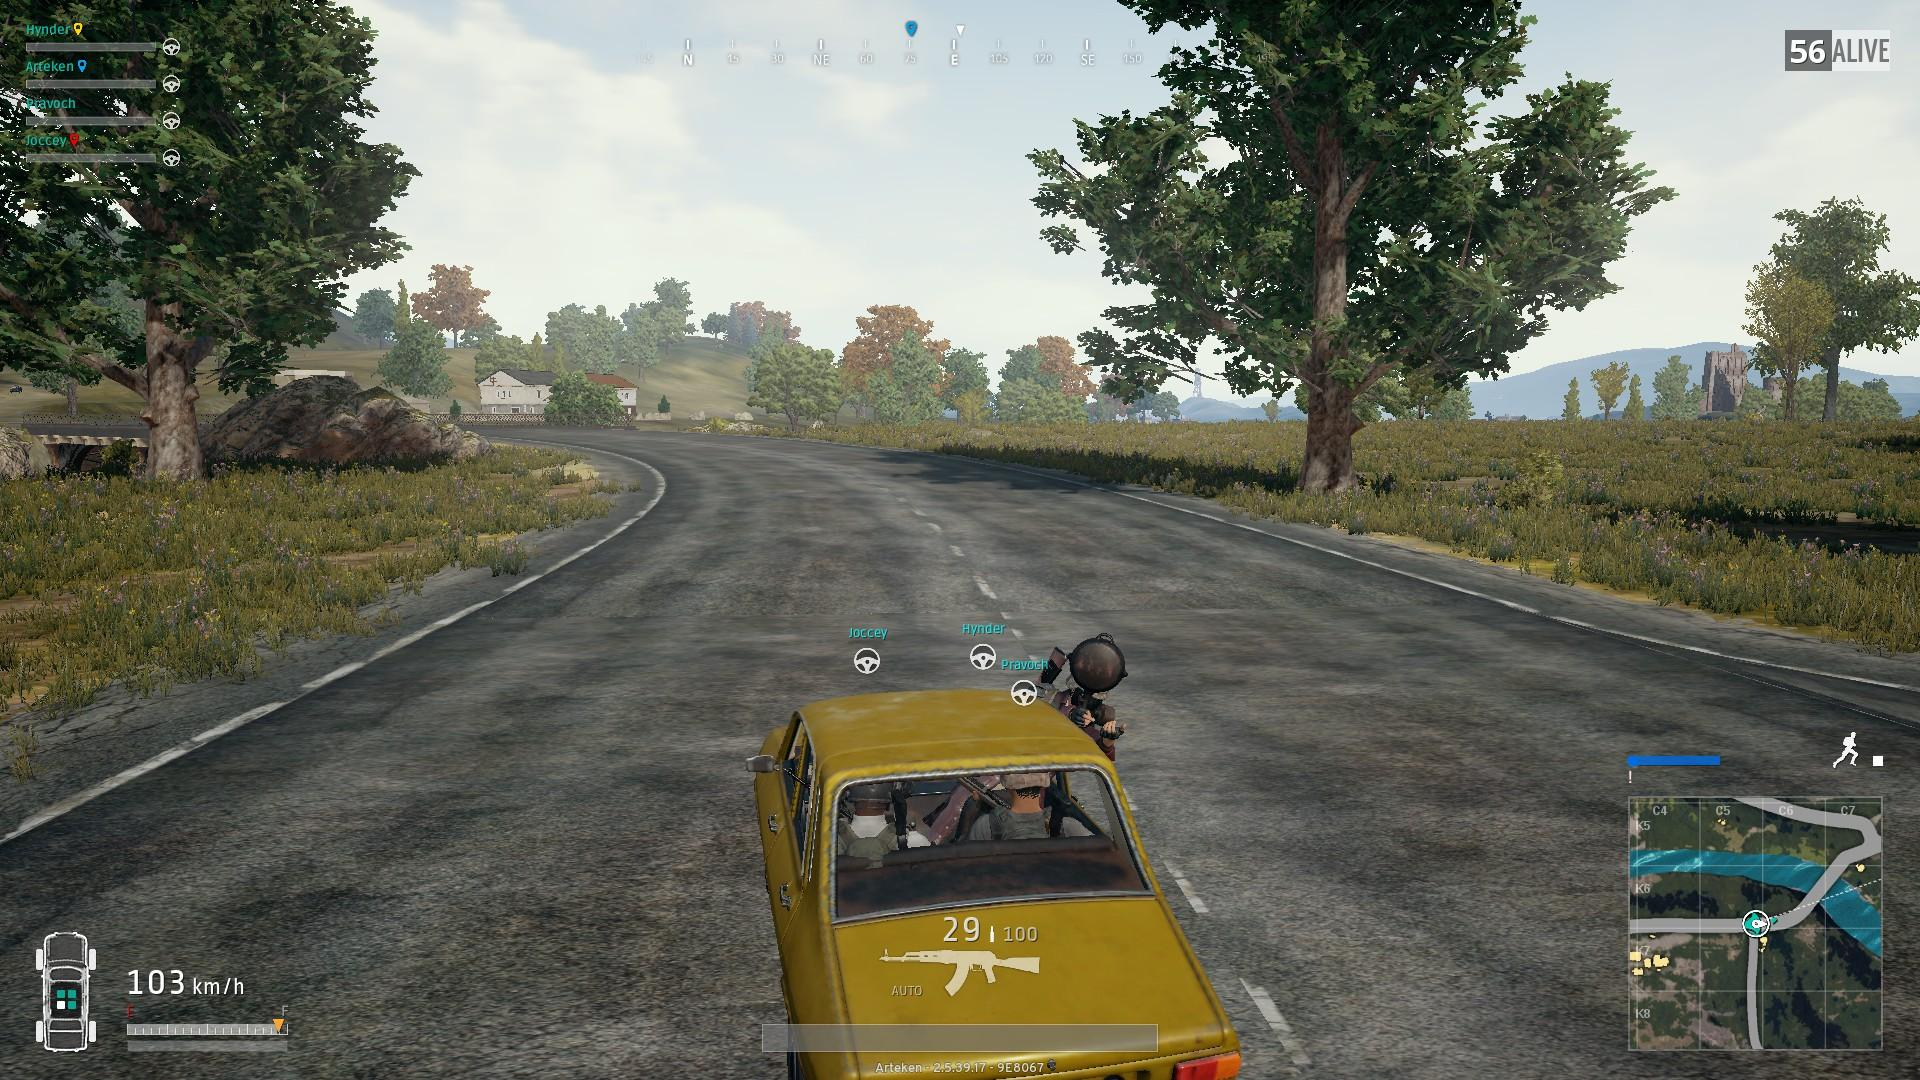 How To Improve In Pubg: Top 5 Mistakes And How To Improve